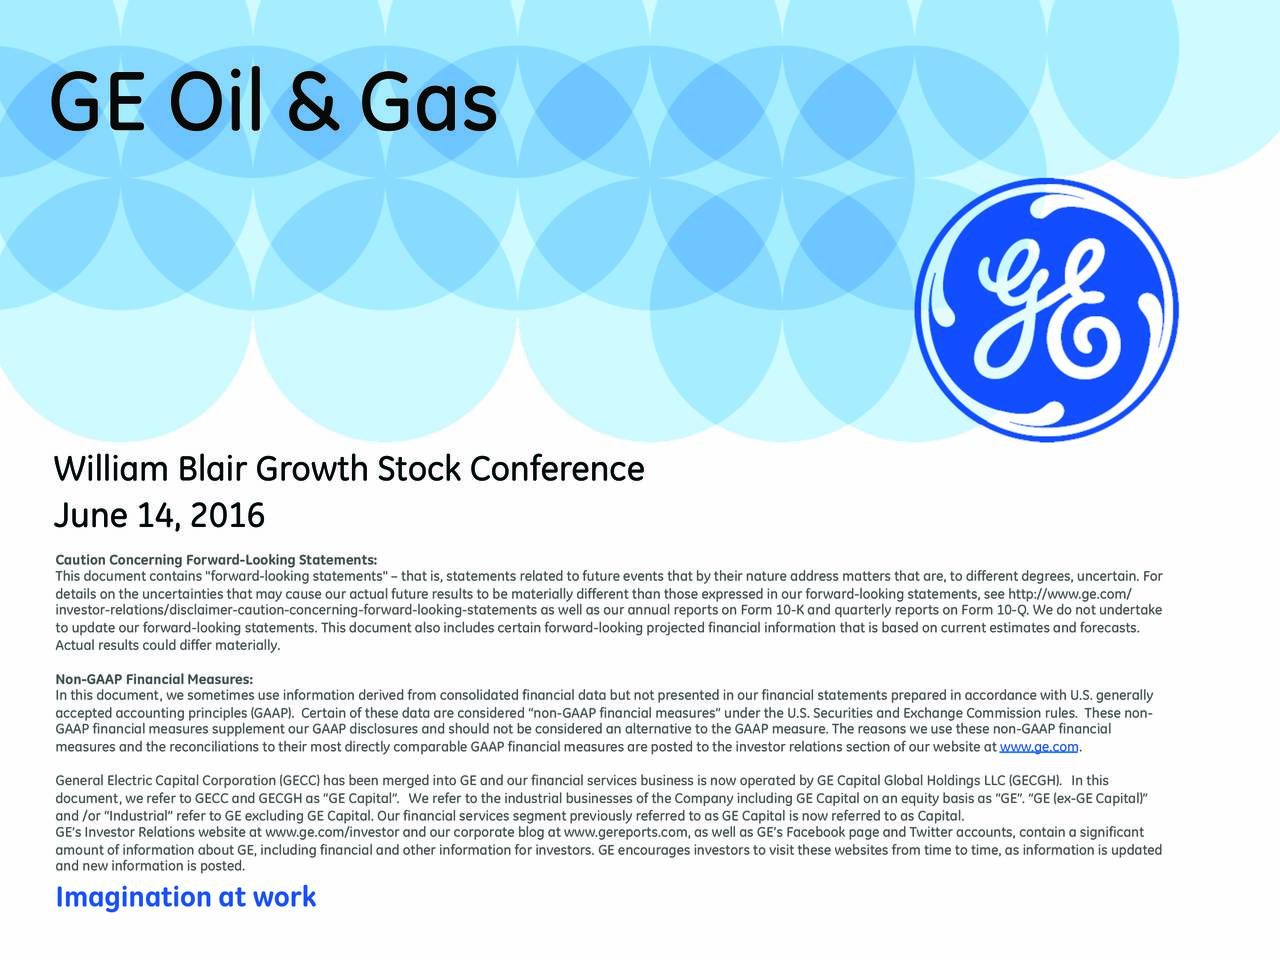 """William Blair Growth Stock Conference June 14, 2016 This document contains """"forward-looking statements""""  that is, statements related to future events that by their nature address matters that are, to different degrees, uncertain. For details on the uncertainties that may cause our actual future results to be materially different than those expressed in our forward-looking statements, see http://www.ge.com/ investor-relations/disclaimer-caution-concerning-forward-looking-statements as well as our annual reports on Form 10-K and quarterly reports on Form 10-Q. We do not undertake to update our forward-looking statements. This document also includes certain forward-looking projected financial information that is based on current estimates and forecasts. Actual results could differ materially. Non-GAAP Financial Measures: In this document, we sometimes use information derived from consolidated financial data but not presented in our financial statements prepared in accordance with U.S. generally accepted accounting principles (GAAP). Certain of these data are considered non-GAAP financial measures under the U.S. Securities and Exchange Commission rules. These non- GAAP financial measures supplement our GAAP disclosures and should not be considered an alternative to the GAAP measure. The reasons we use these non-GAAP financial measures and the reconciliations to their most directly comparable GAAP financial measures are posted to the investor relations section of our website at www.ge.com. General Electric Capital Corporation (GECC) has been merged into GE and our financial services business is now operated by GE Capital Global Holdings LLC (GECGH). In this document, we refer to GECC and GECGH as GE Capital. We refer to the industrial businesses of the Company including GE Capital on an equity basis as GE. GE (ex-GE Capital) and /or Industrial refer to GE excluding GE Capital. Our financial services segment previously referred to as GE Capital is now referred to as Capit"""